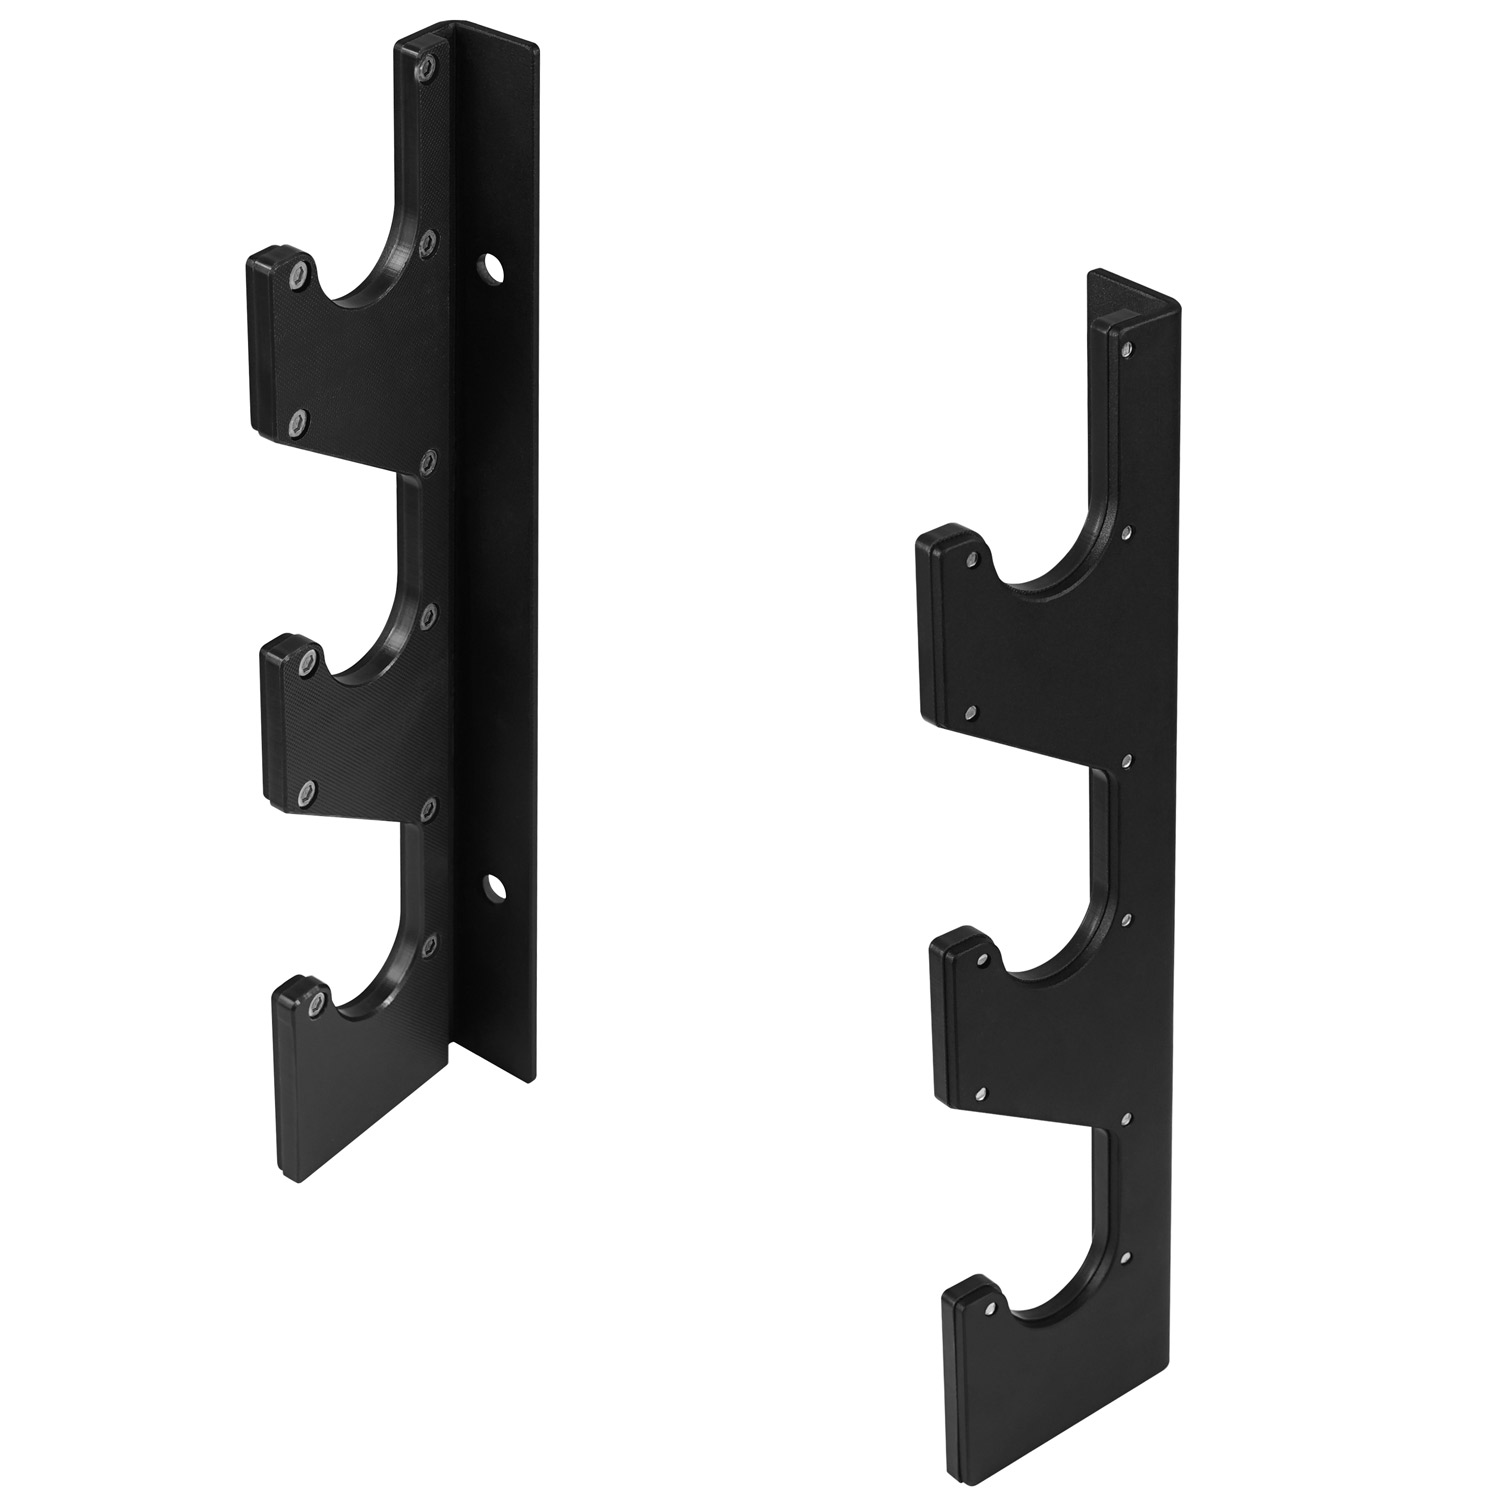 Yes4all Horizontal Wall Mounted Olympic Barbell Rack 3